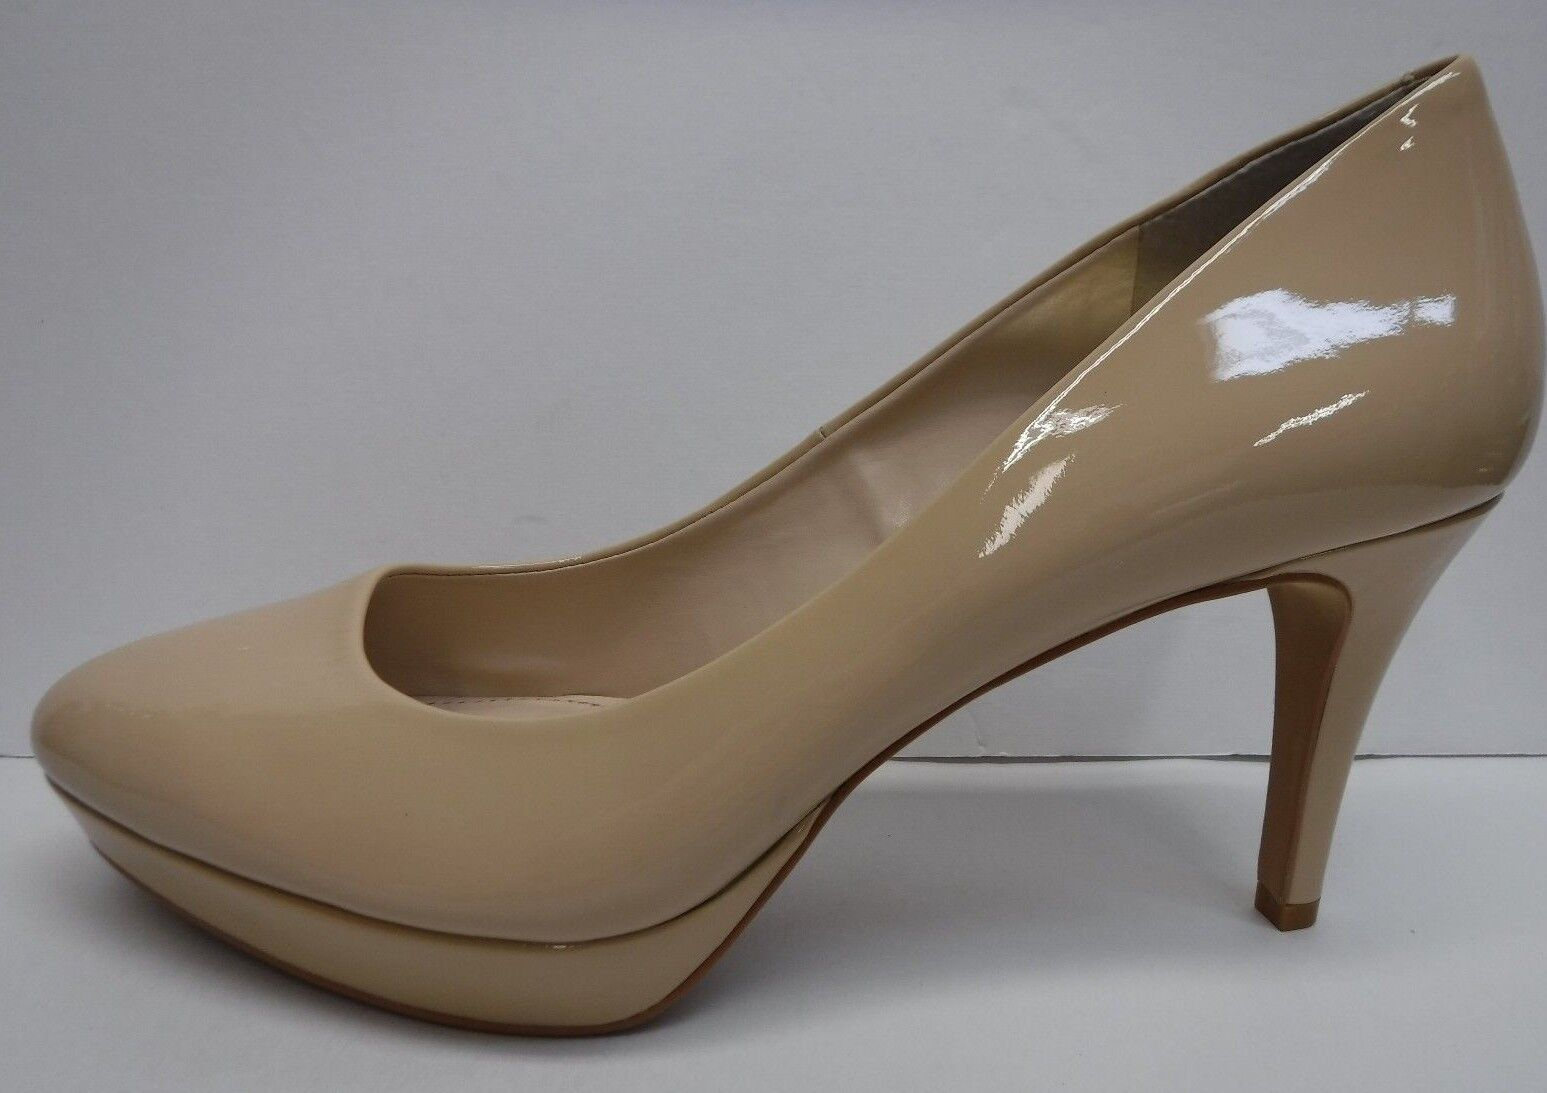 Vince Camuto Size 10 Beige Patent Leather Heels New Womens shoes